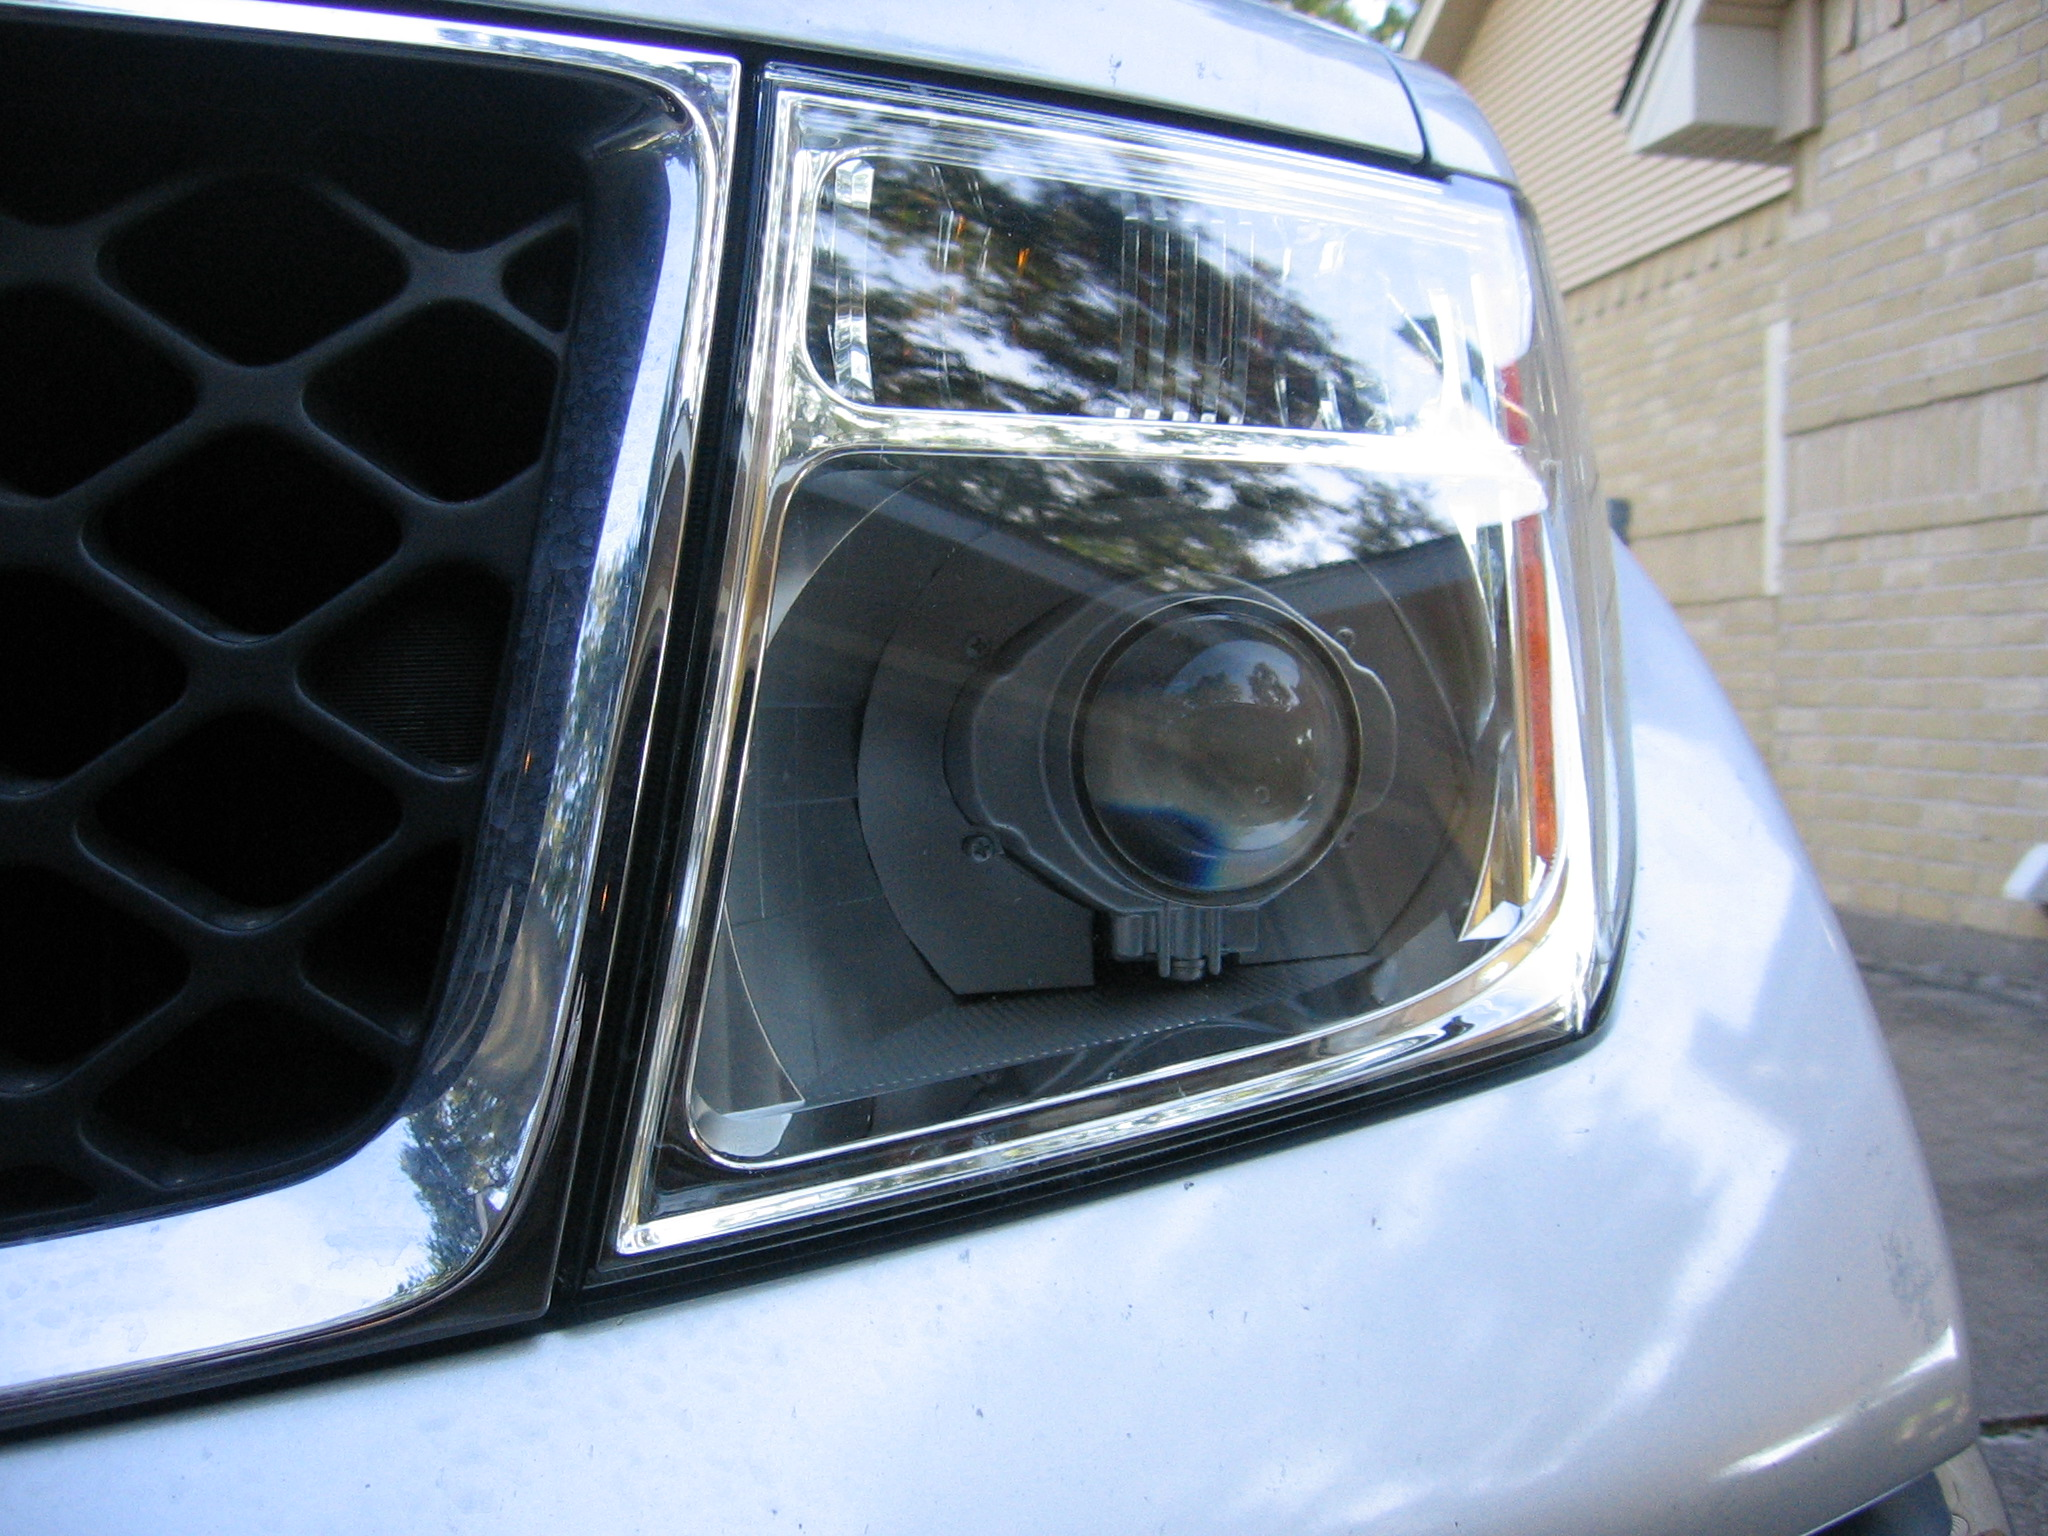 Same headlights but on frontiers